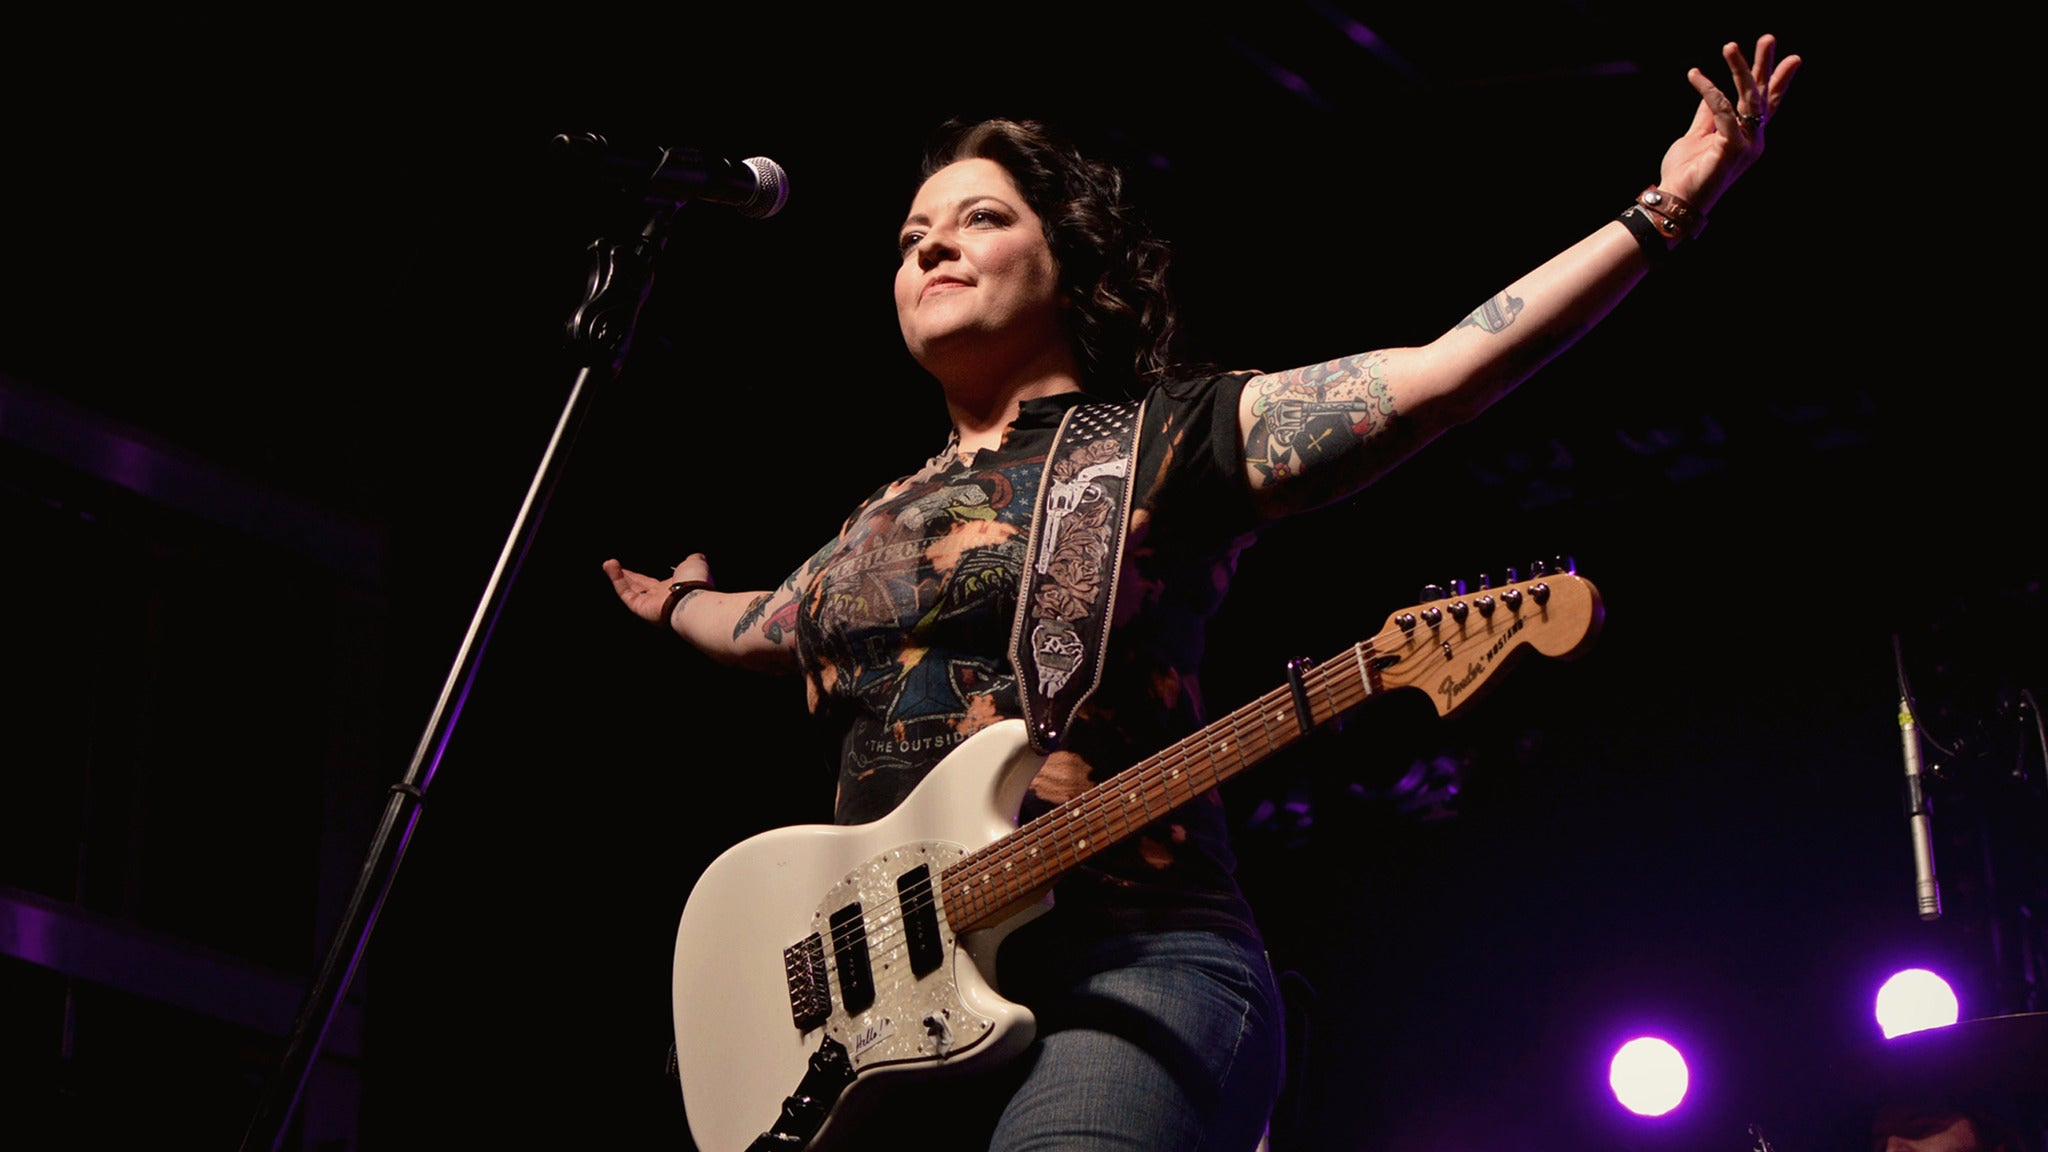 Ashley McBryde-the Girl Going Nowhere Tour at Zydeco